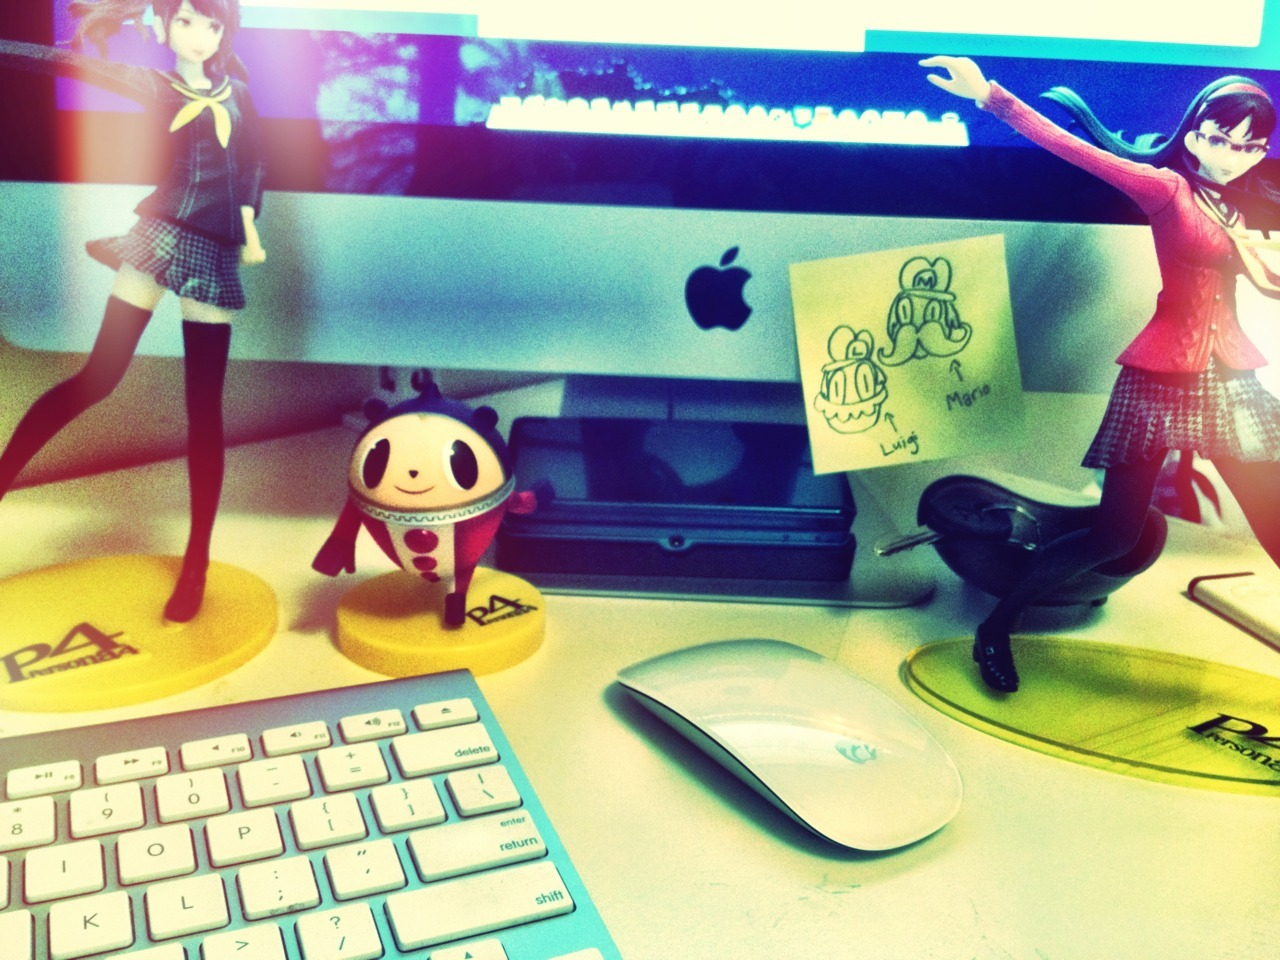 Current desktop. (Noseless Mario & Luigi doodles are by me.)